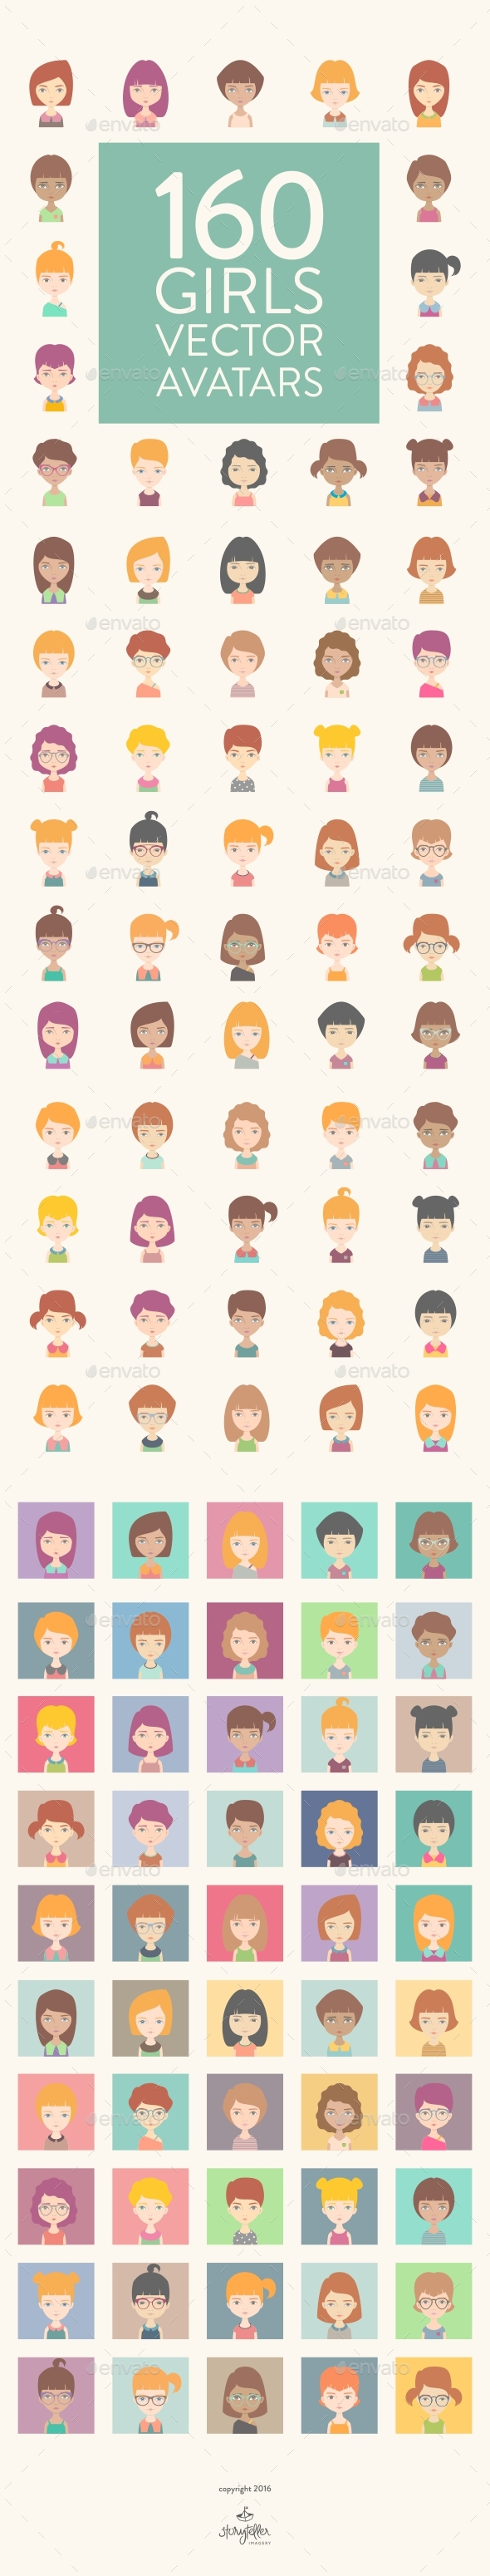 160 Girls Vector Avatars - People Characters